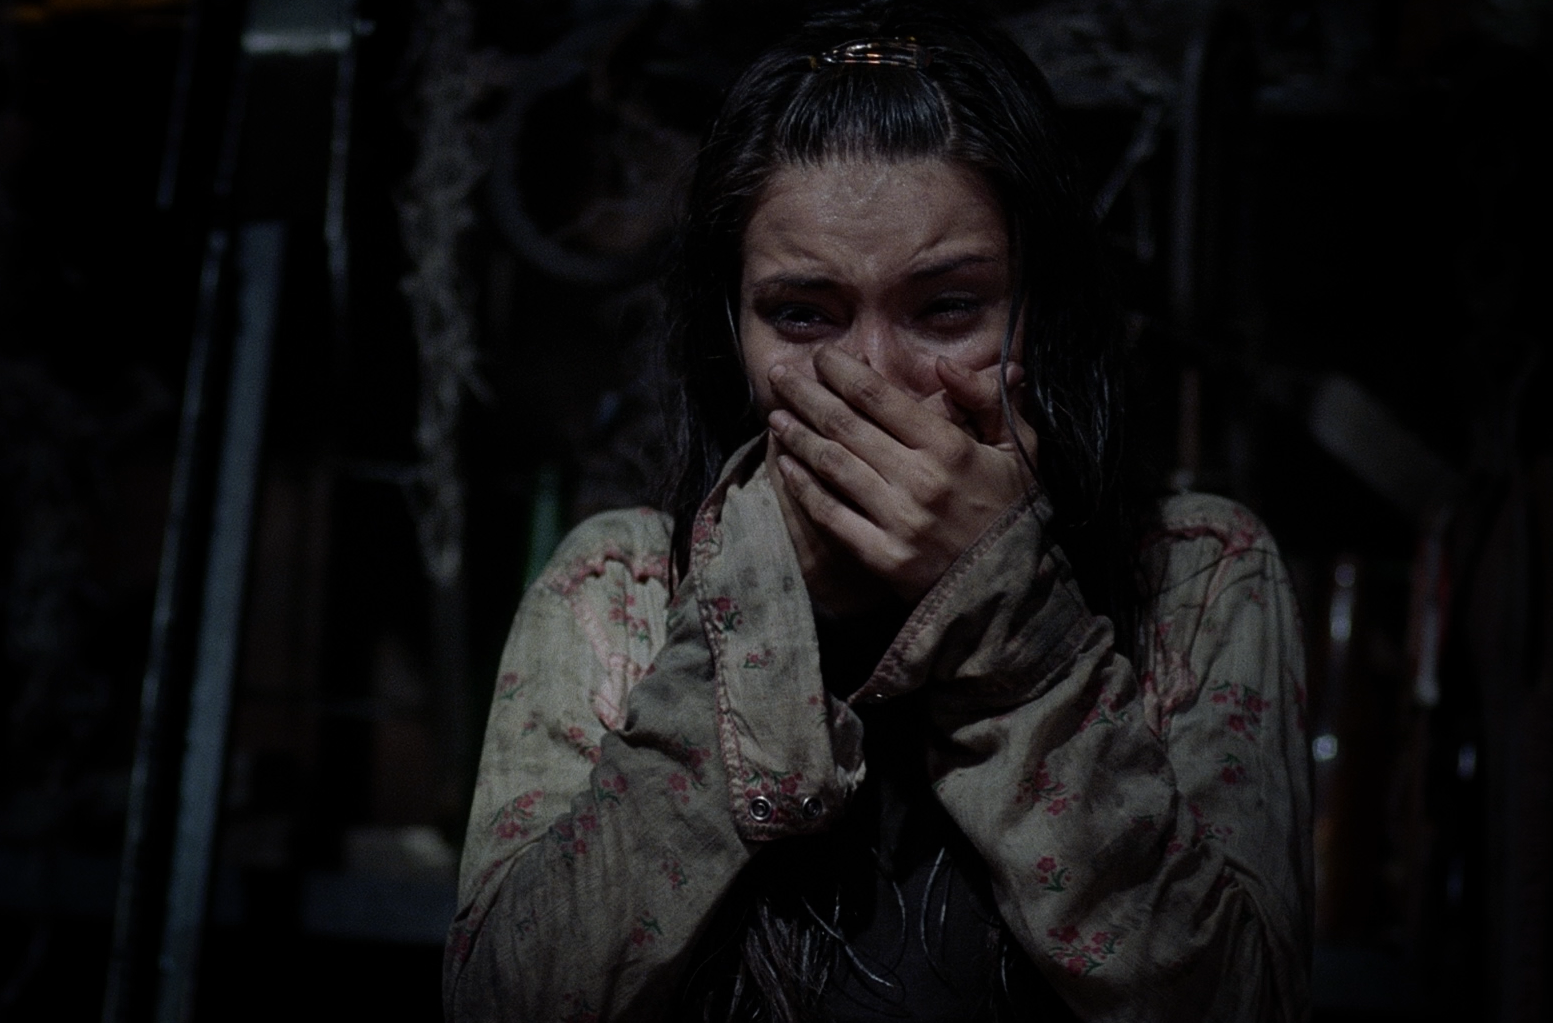 Marybeth (Tamara Feldman) cries after find the dead bodies of her father and brother in Hatchet.